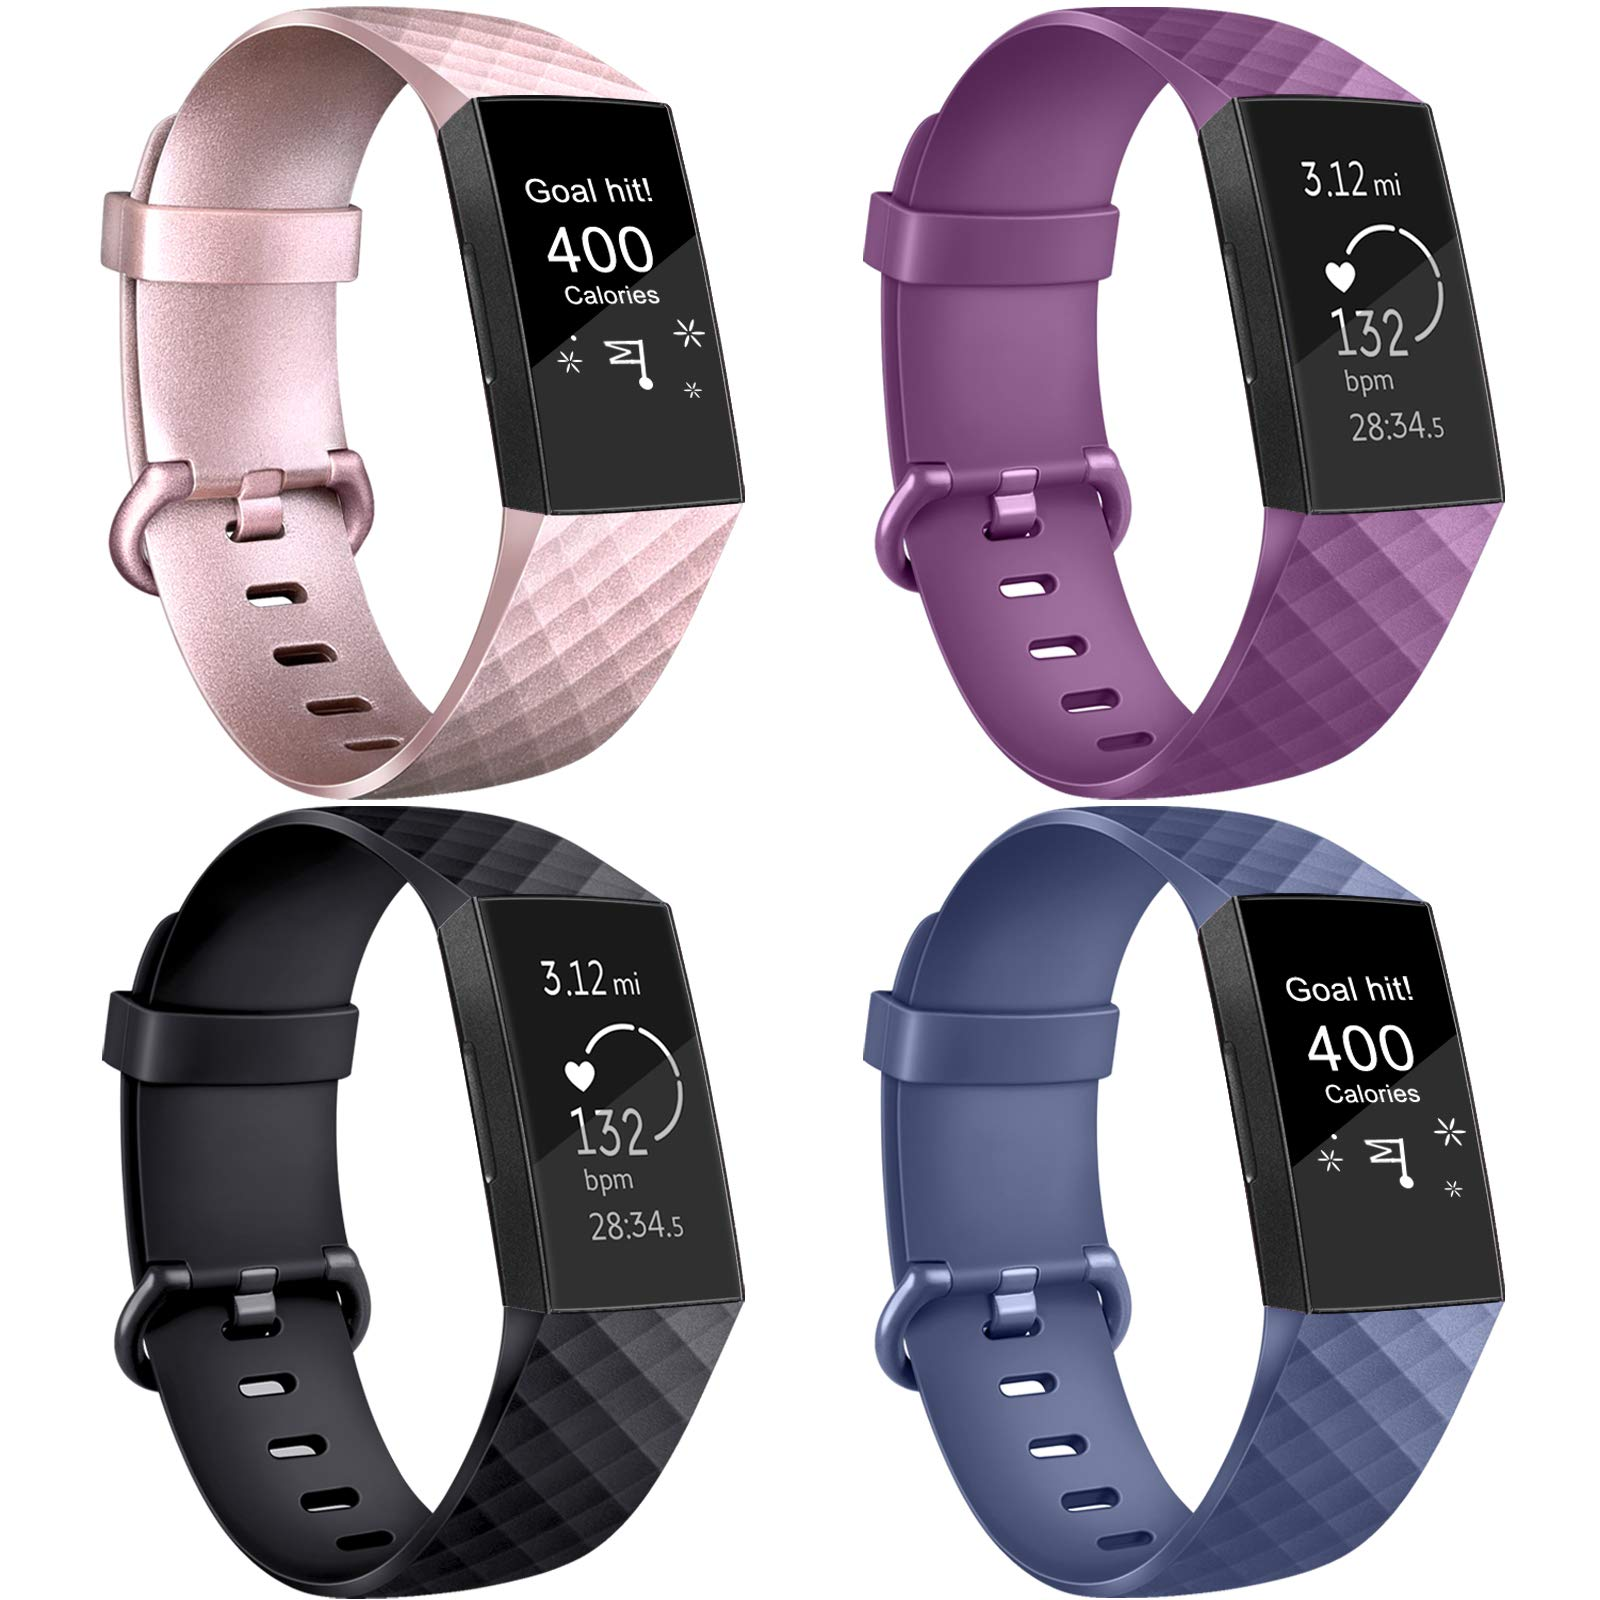 AK Compatible for Fitbit Charge 3 / Charge 4 Special Edition Strap, Charge 3 Straps Adjustable Replacement Sport Accessory Wristband for Fitbit Charge 3